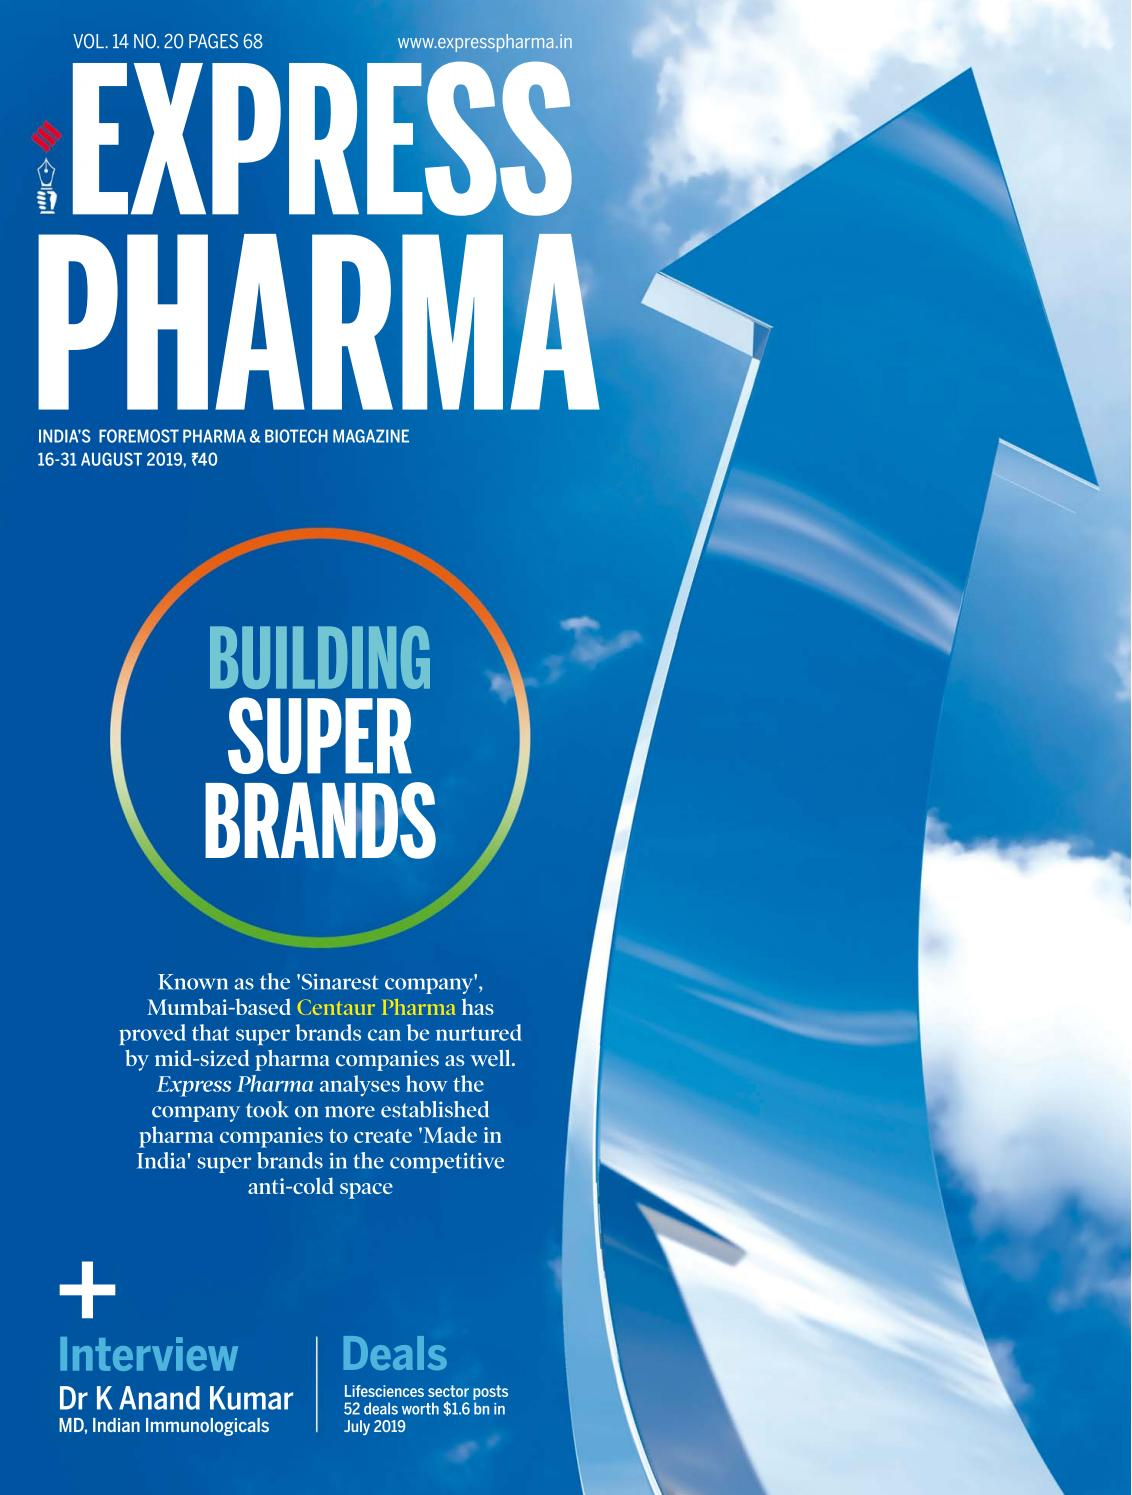 Express Pharma (Vol 14, No 20) August 16-31, 2019 by Indian